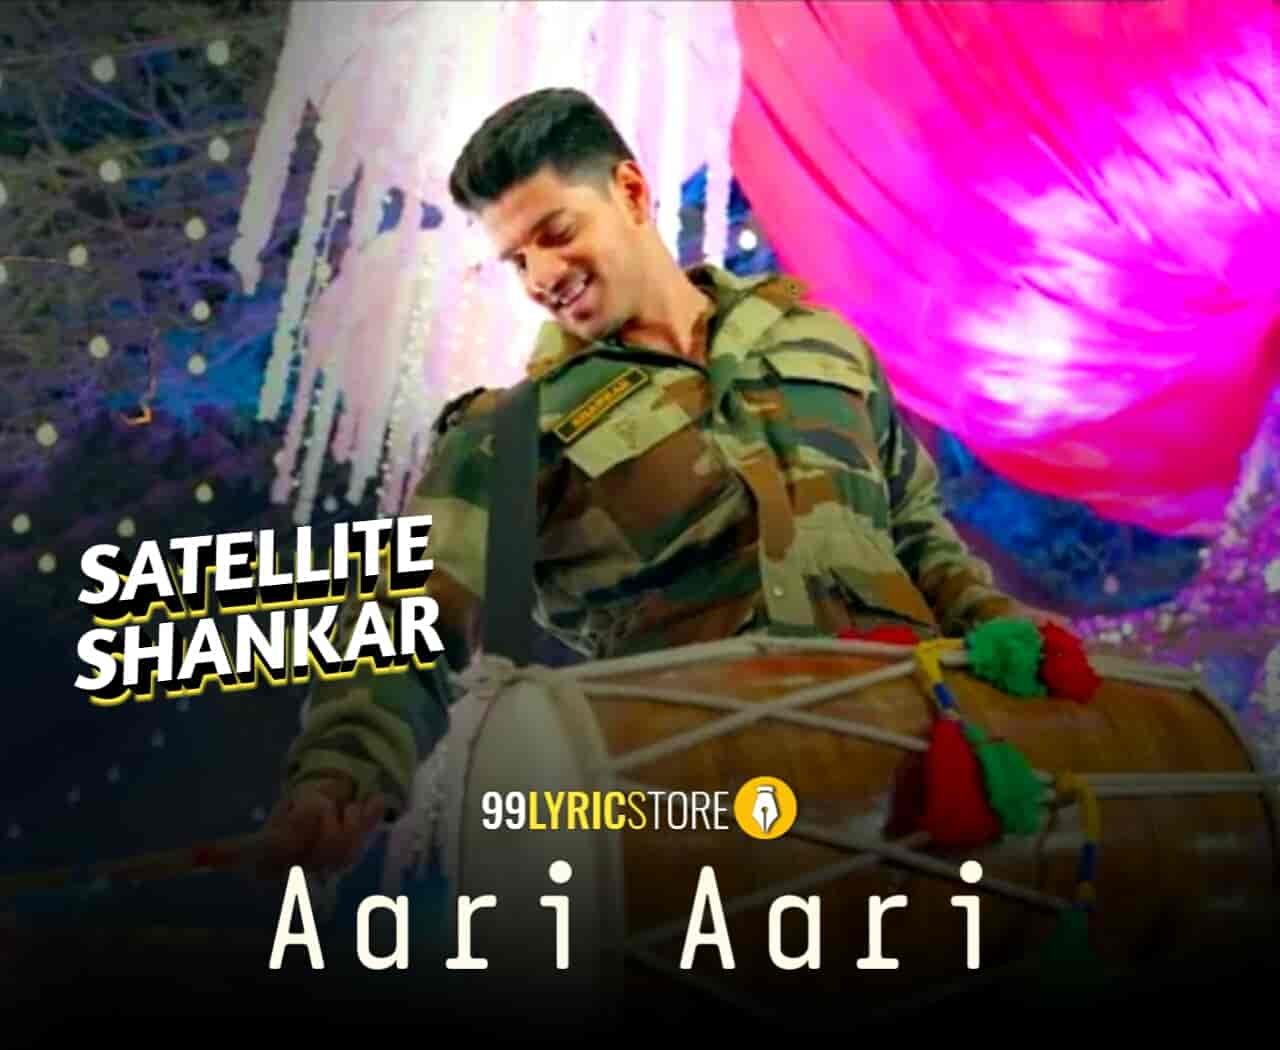 Aari Aari Satellite Shankar Song Images